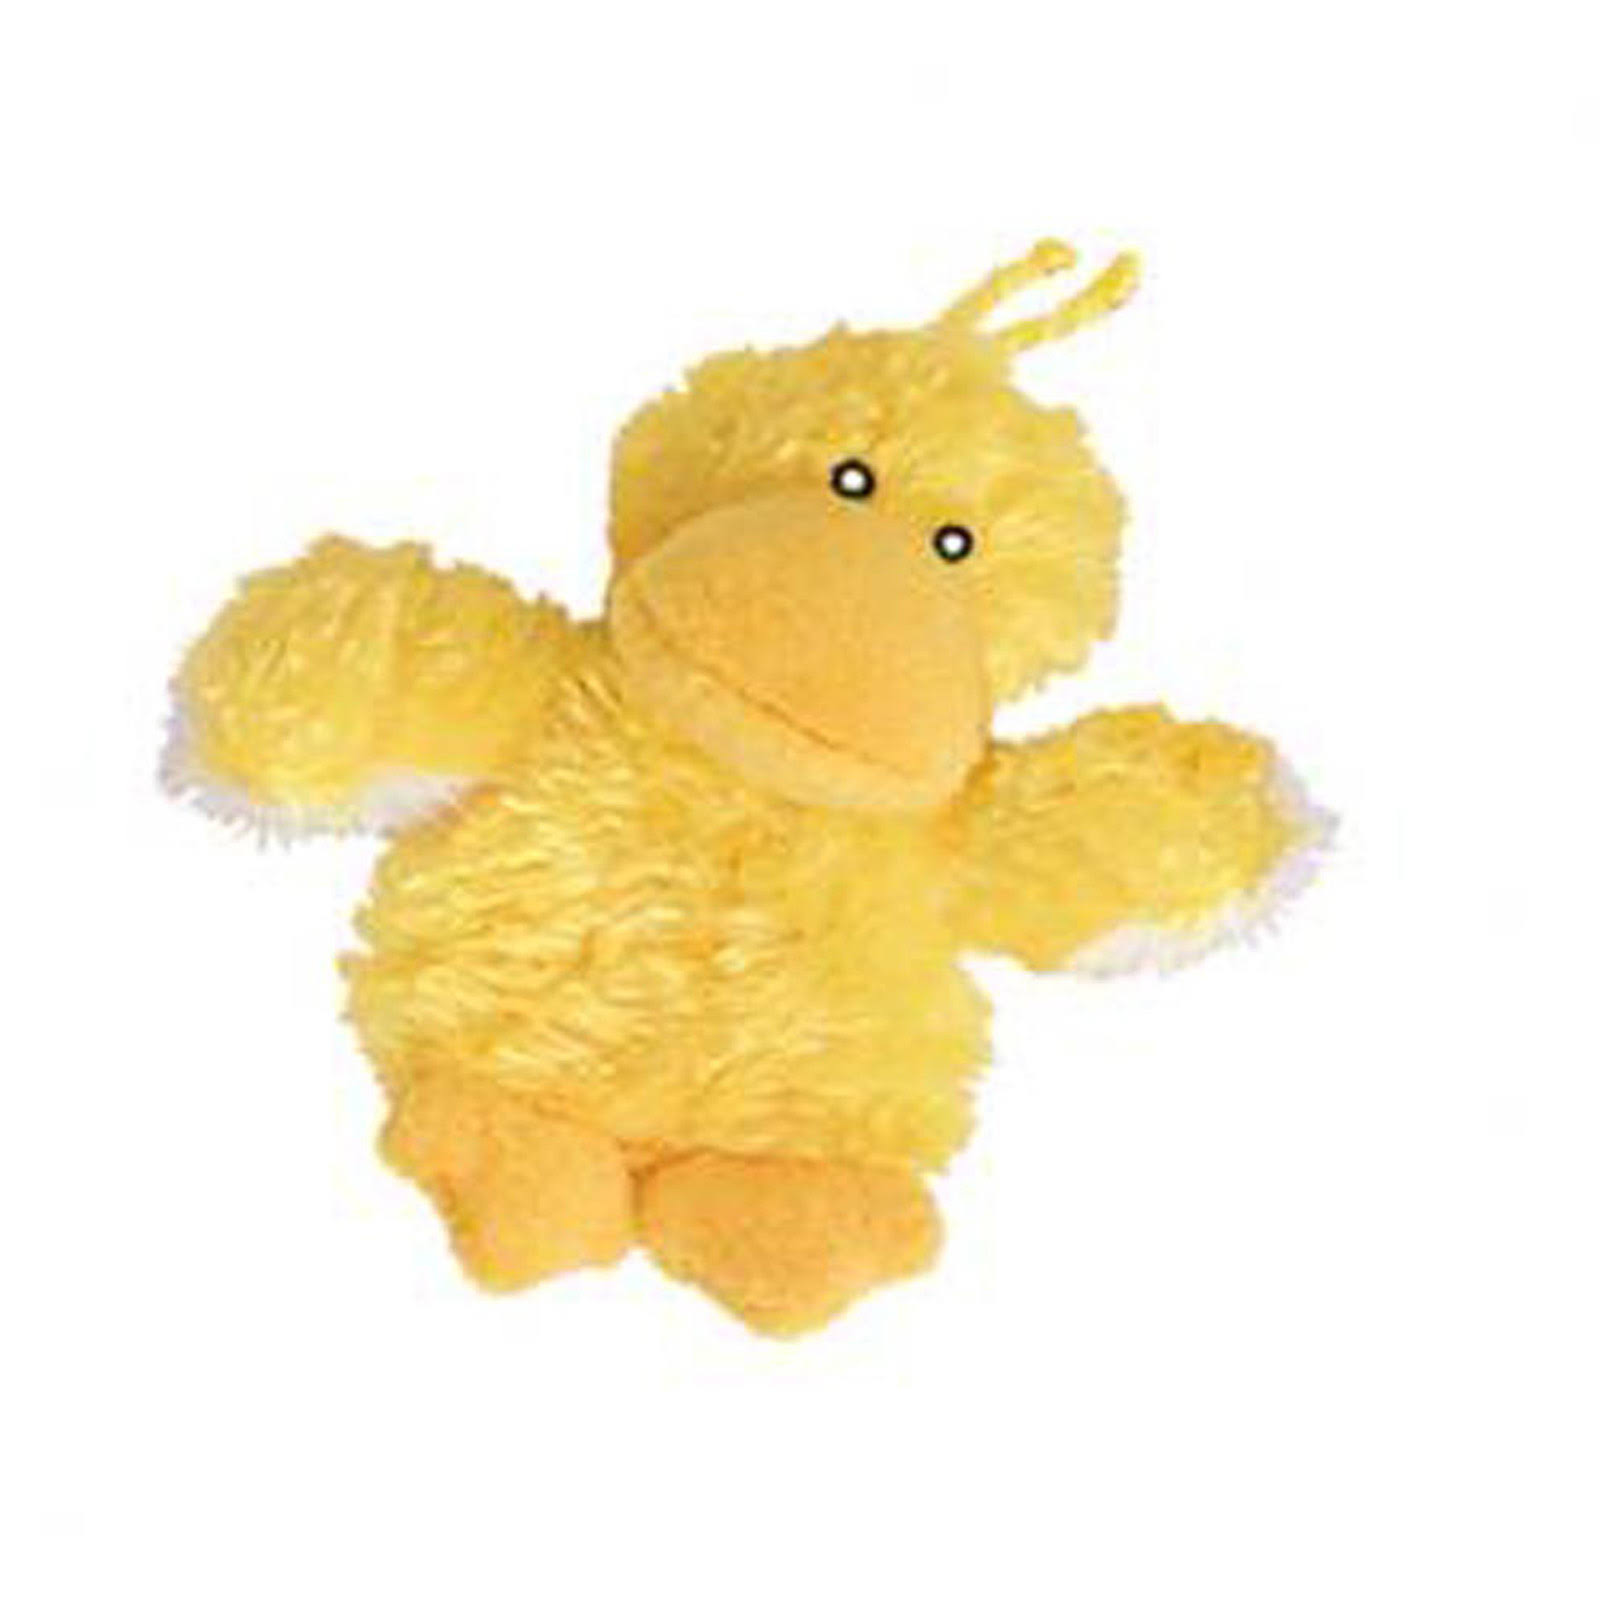 Kong Duckie Catnip Toy - Yellow